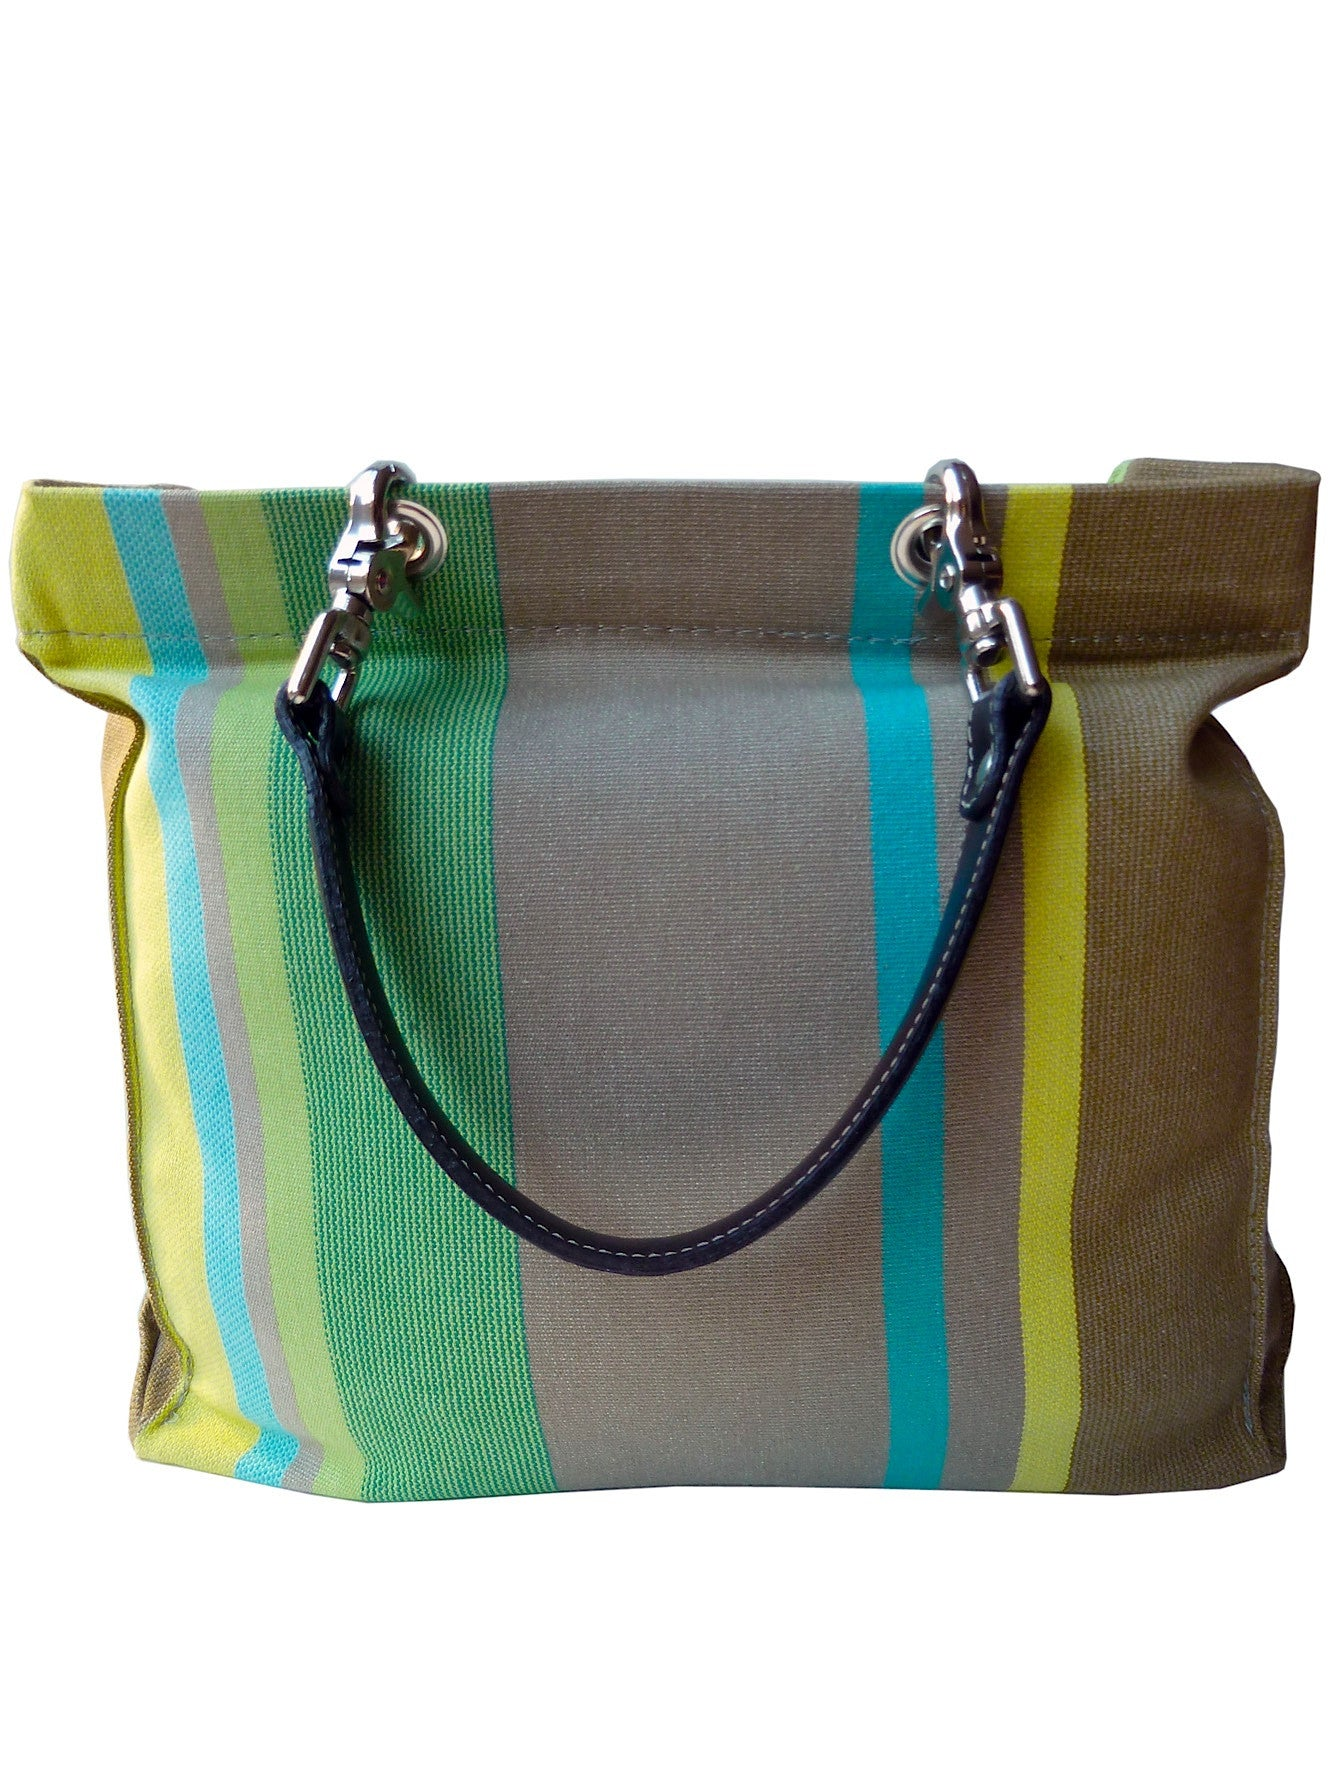 French Cotton Stripe Bags Khaki Blue Green